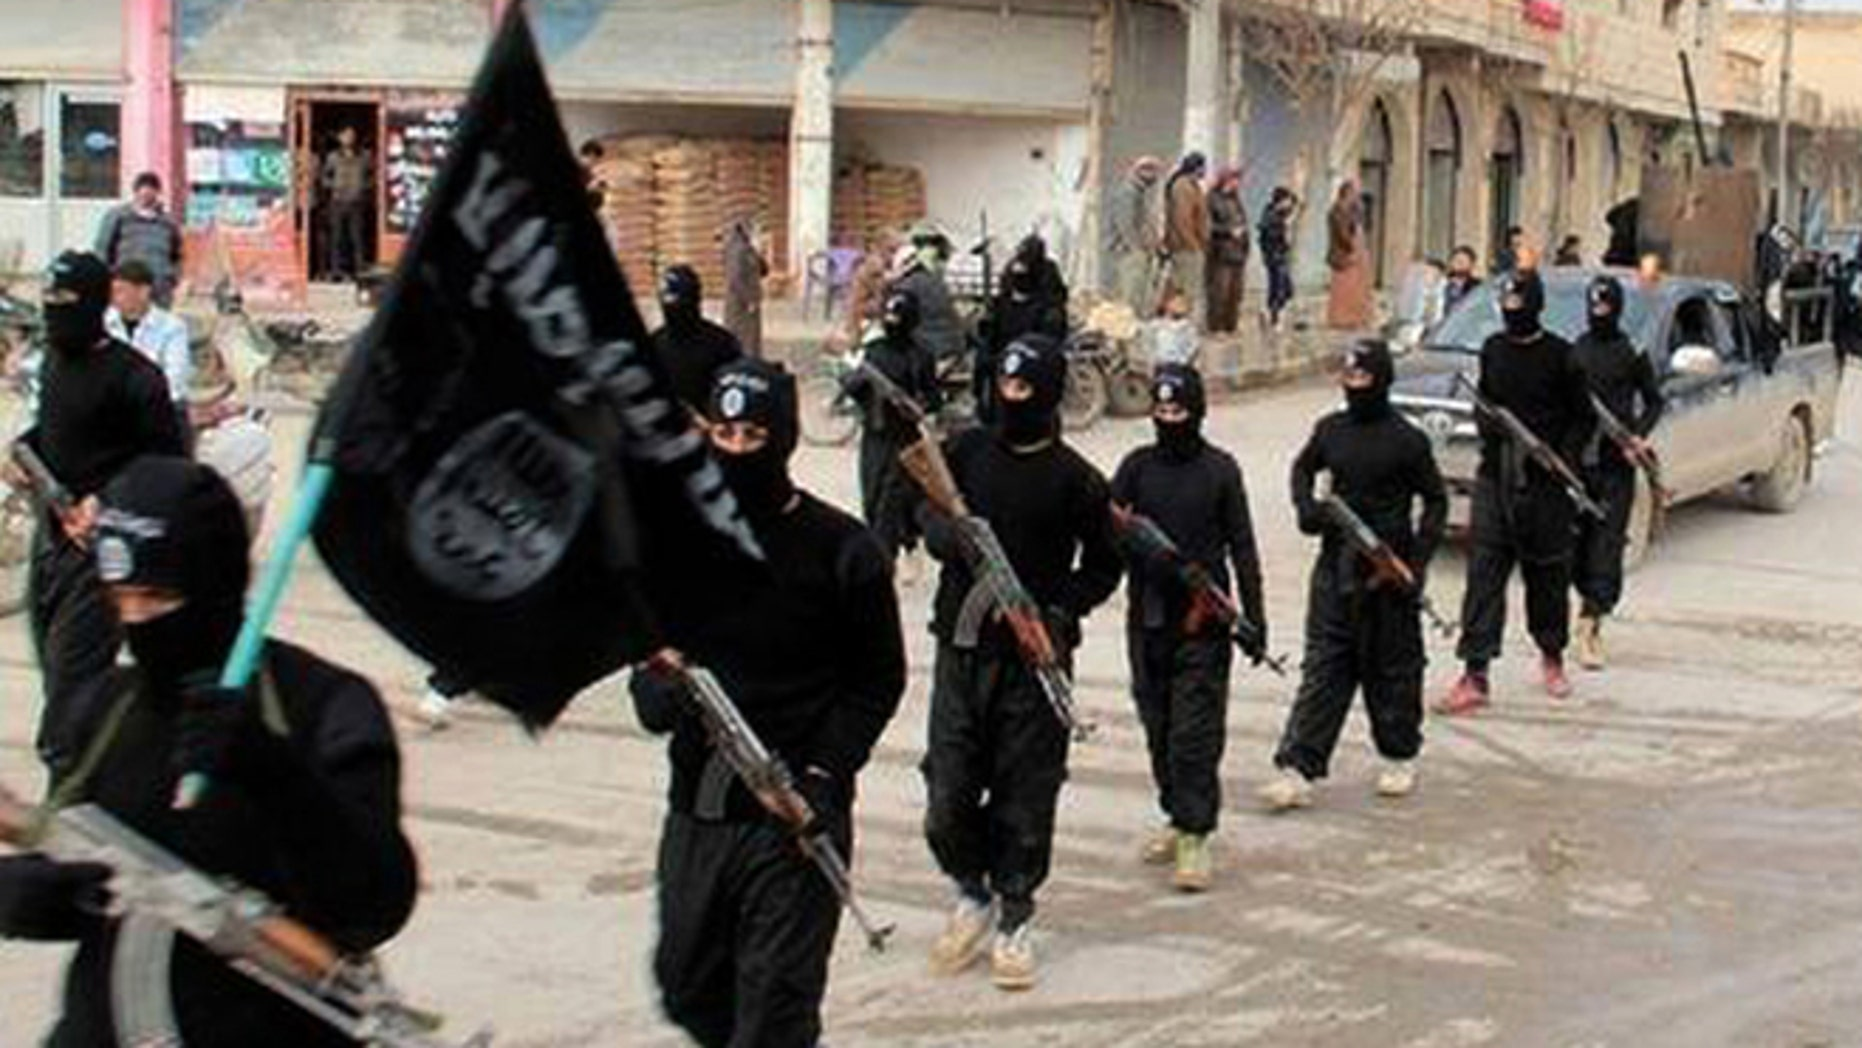 ISIS fighters march in Raqqa, Syria.